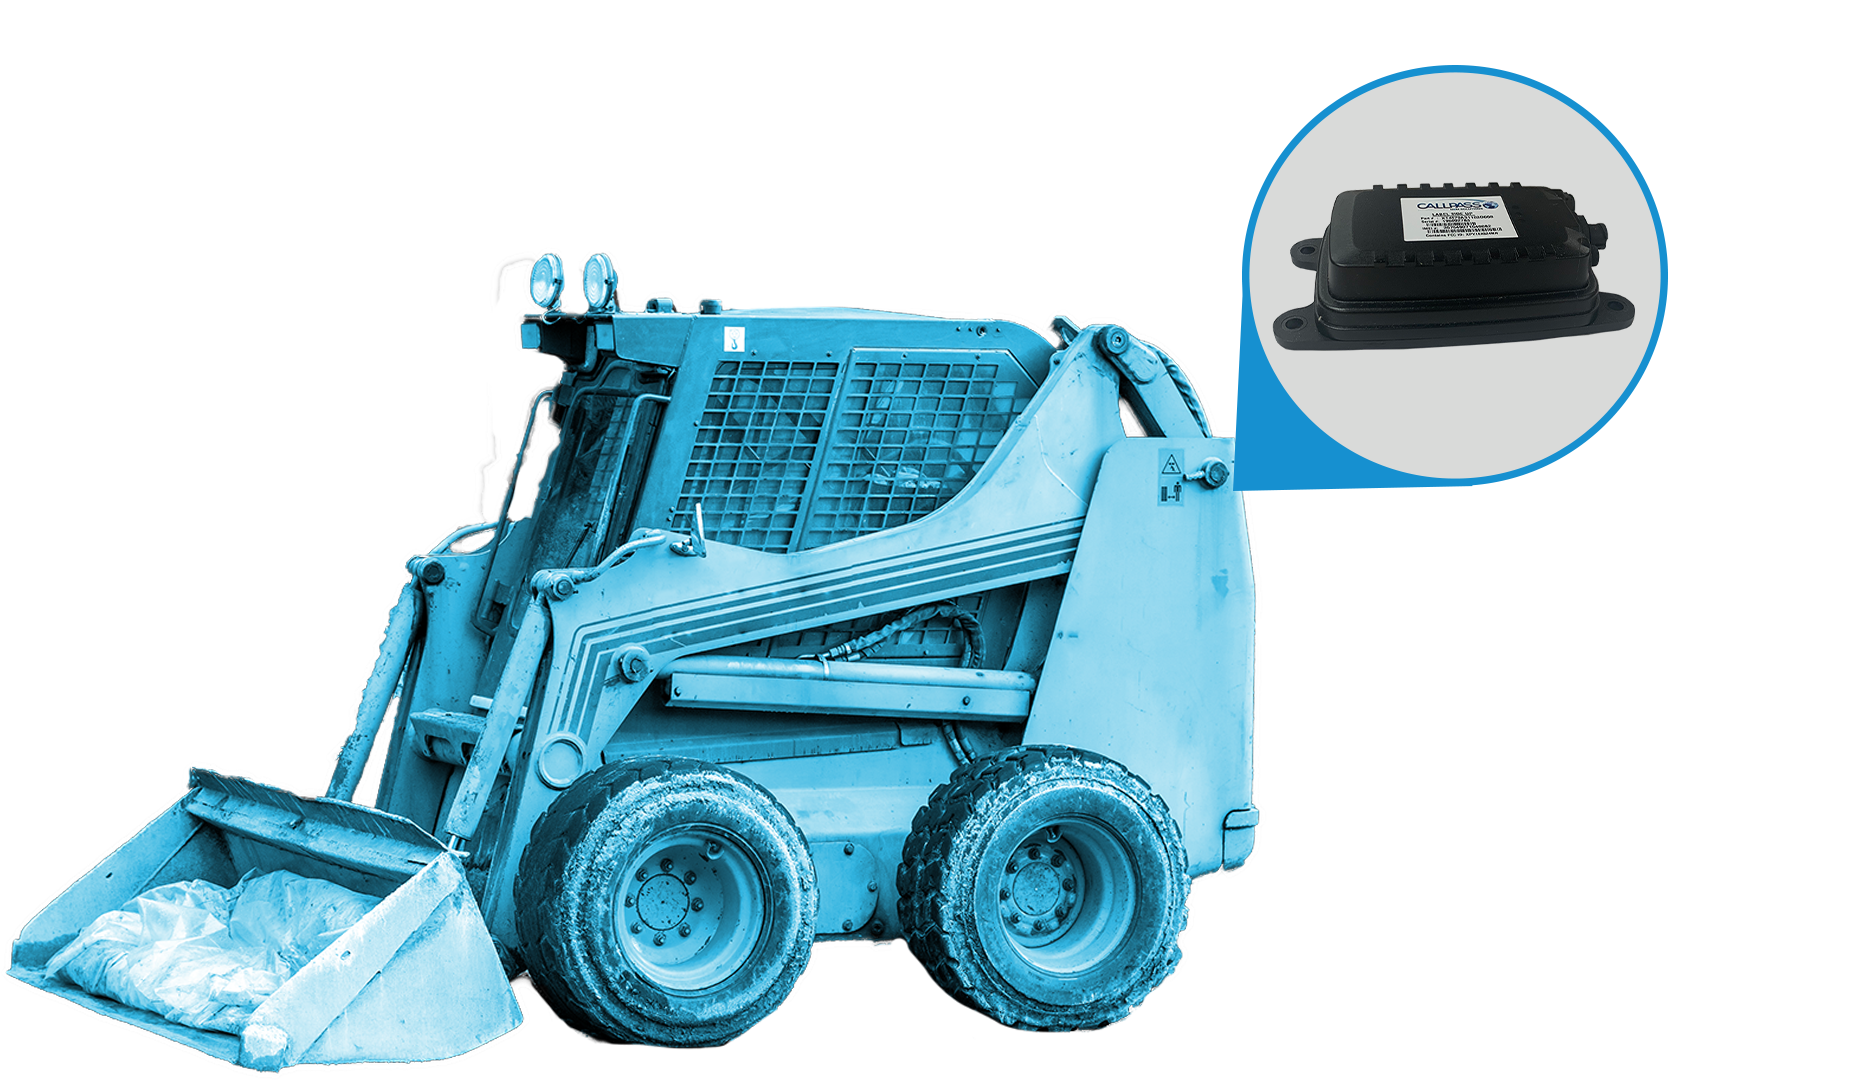 Skid Loader With CP45 Device